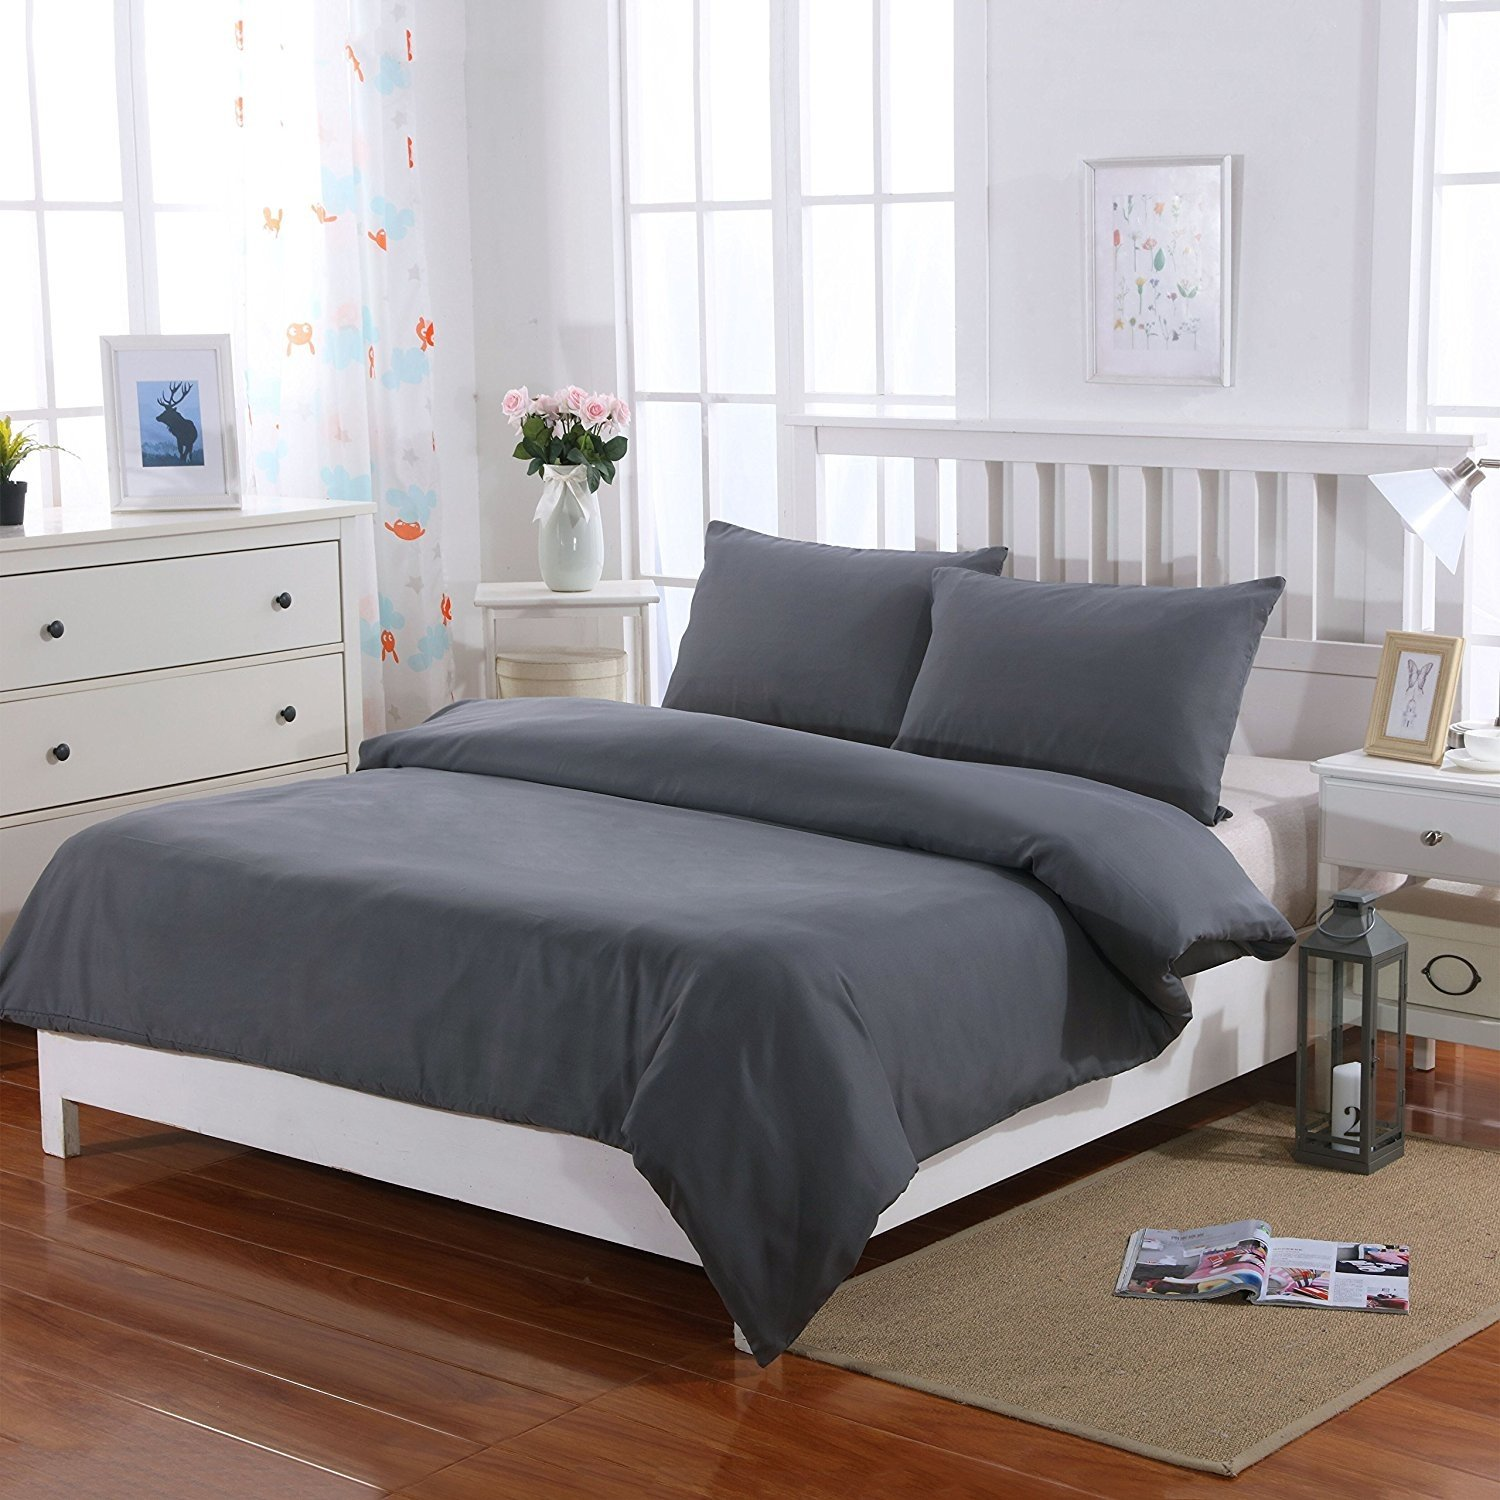 AYSW 3-Pieces Double Duvet Cover Set Plain Brushed Microfiber Plain Bedding Duvet Cover with 2 Pillowcases (Grey) AYA